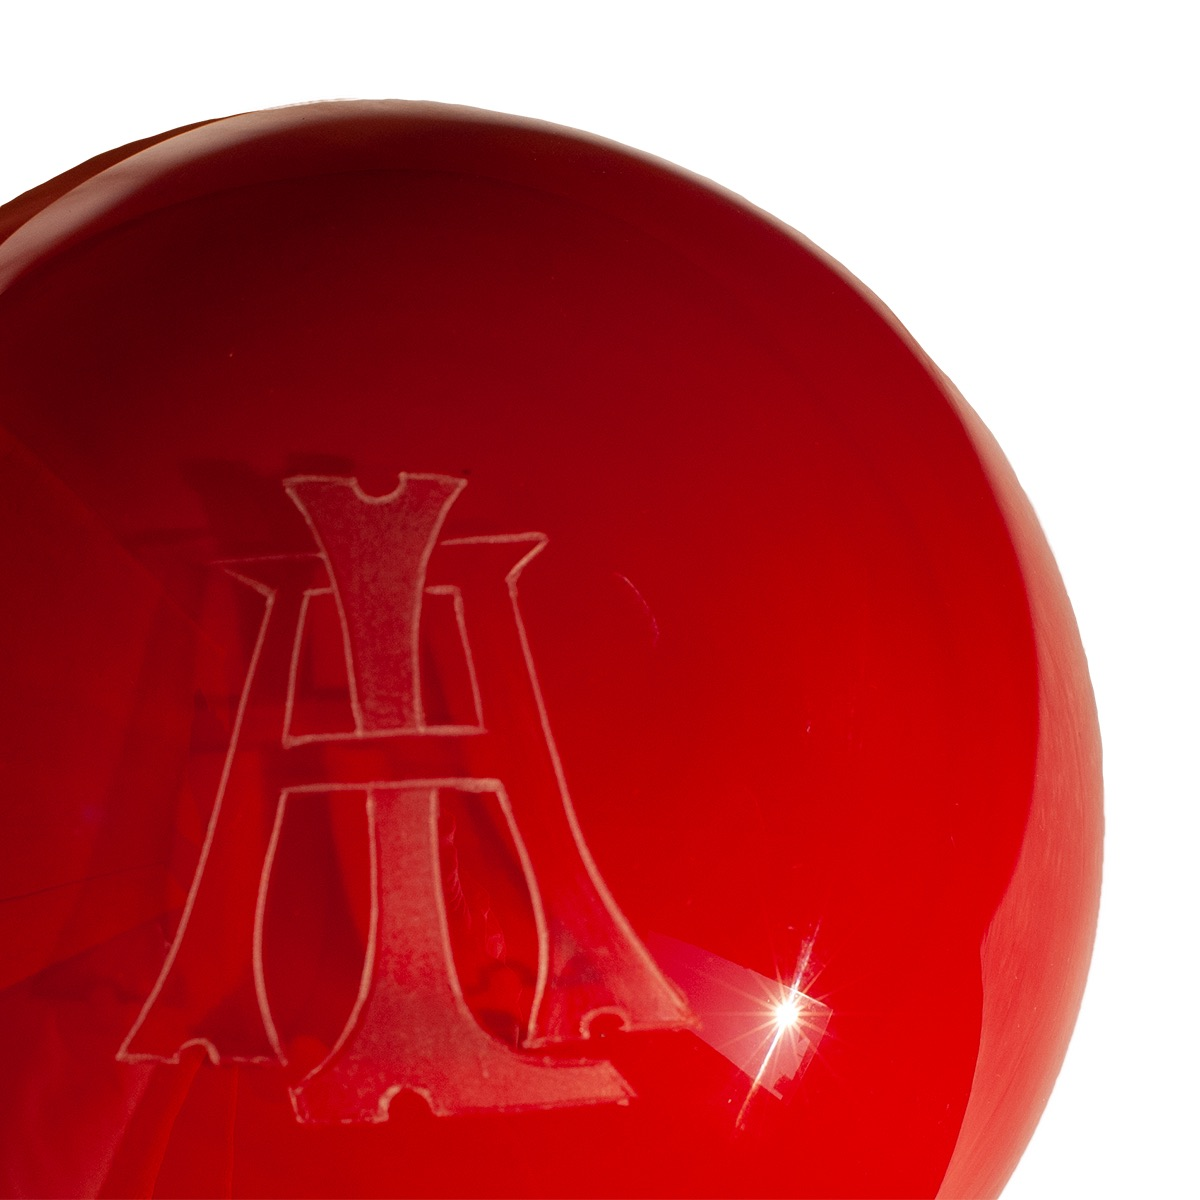 press-papier-red-detail-engraved-murano-glass-design-giberto-venice